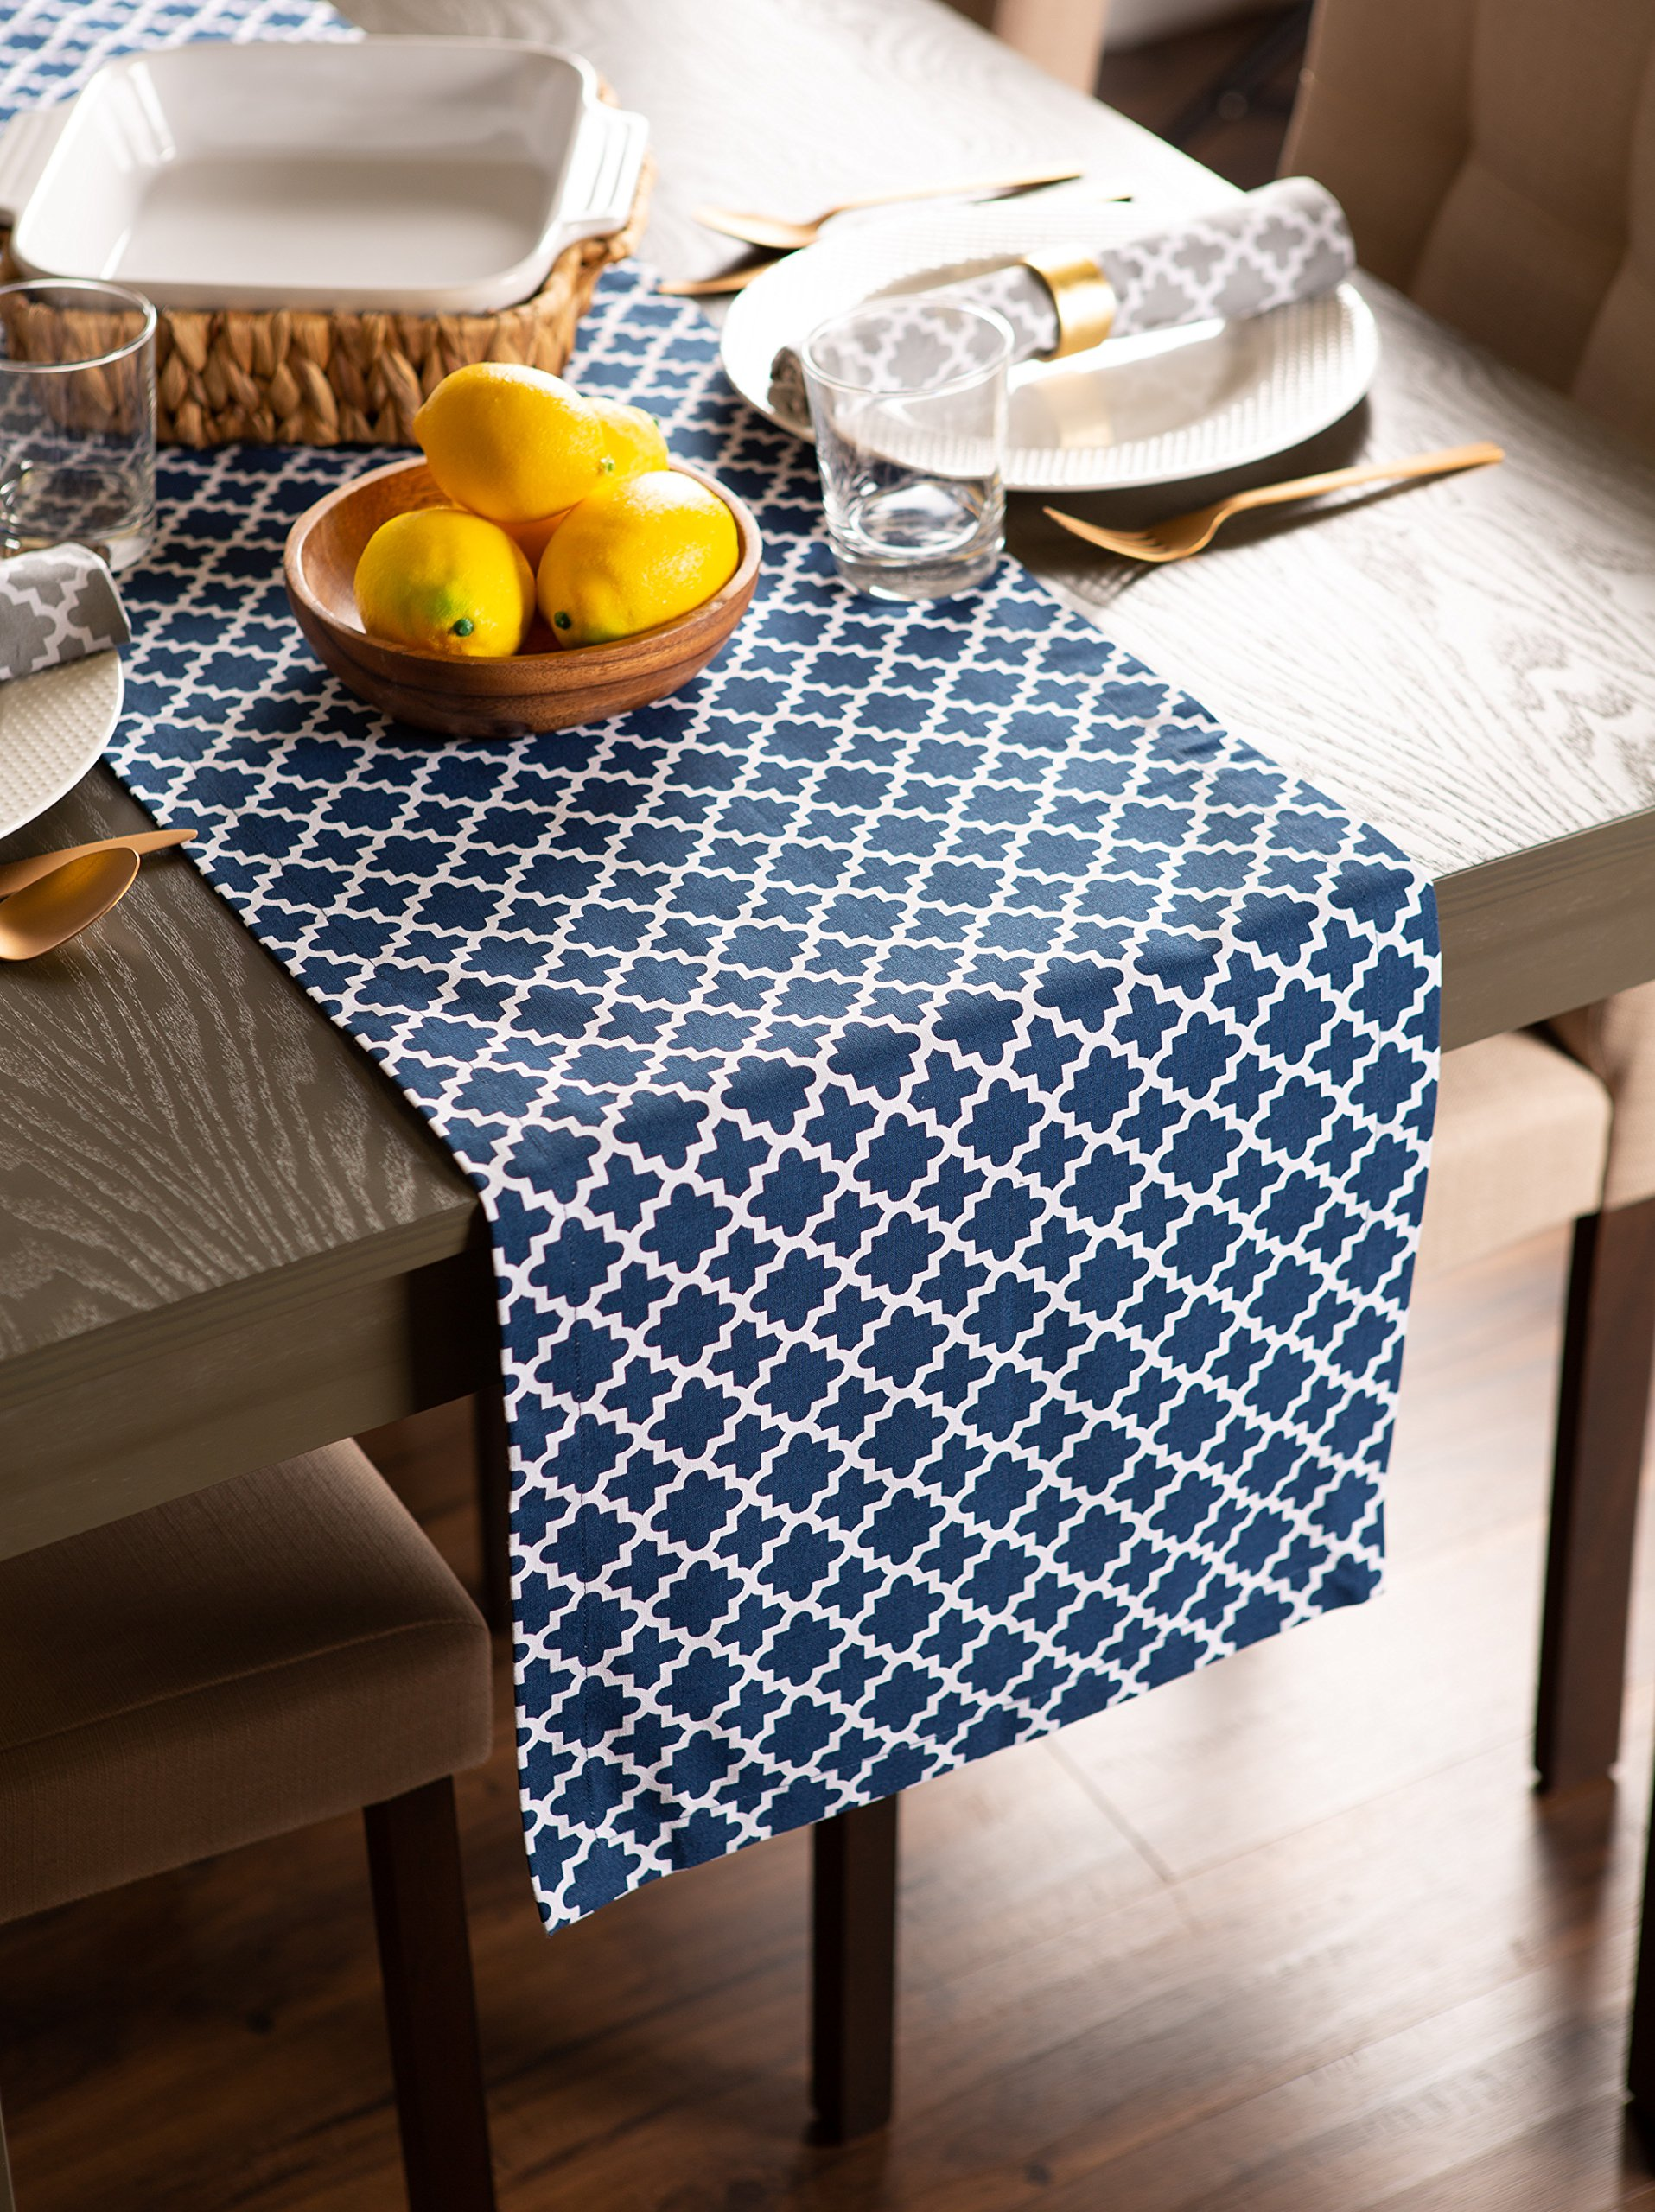 DII Lattice Cotton Table Runner for Dining Room, Foyer Table, Summer Parties and Everyday Use - 14x108'', Nautical Blue and White by DII (Image #7)